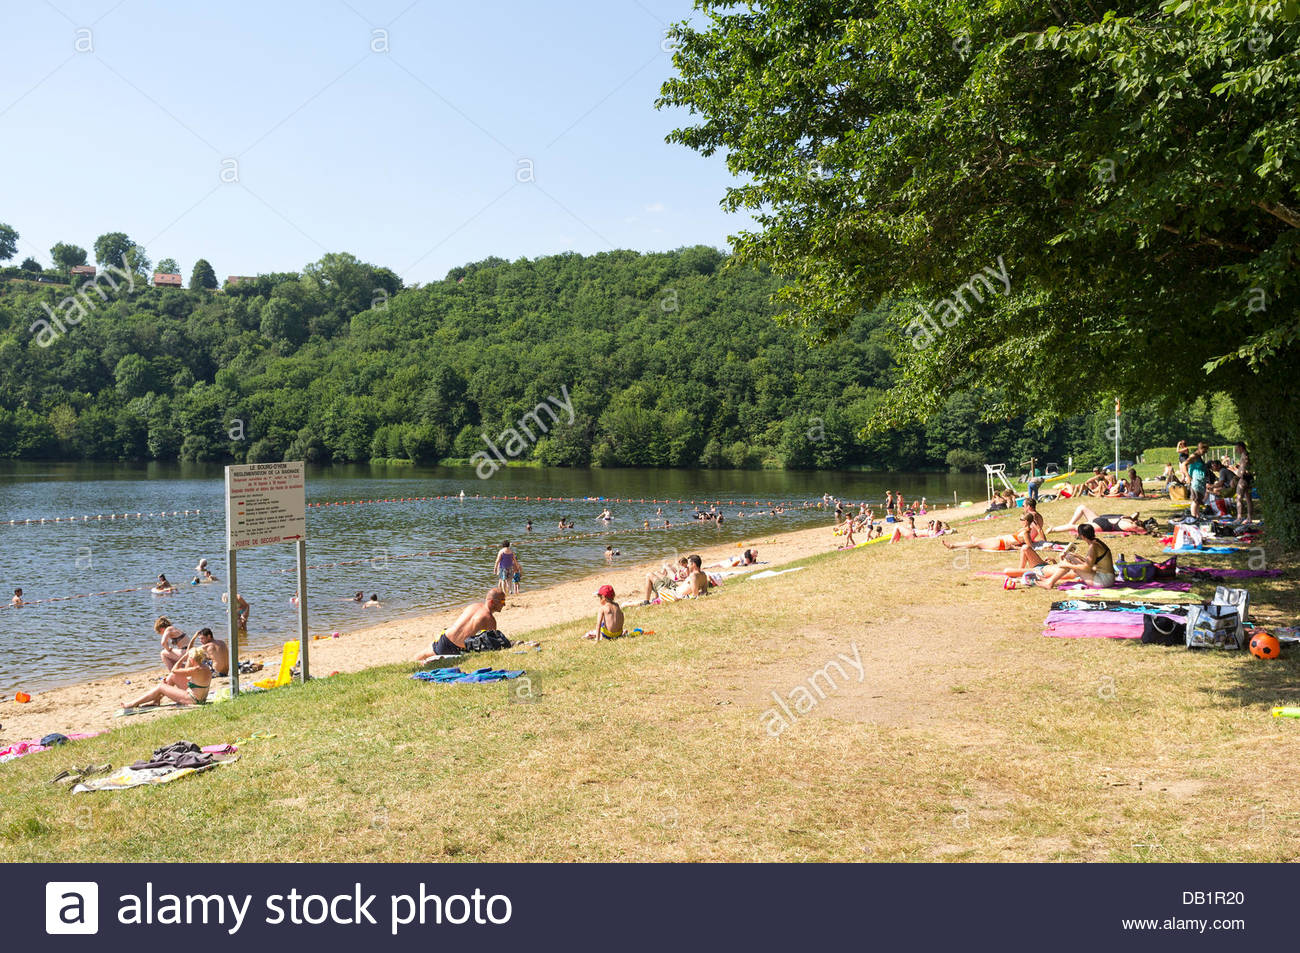 Le Bourg-d'Hem, Limousin, France. 22nd July, 2013. People at a beach on the Creuse river. Temperatures in France - Stock Image